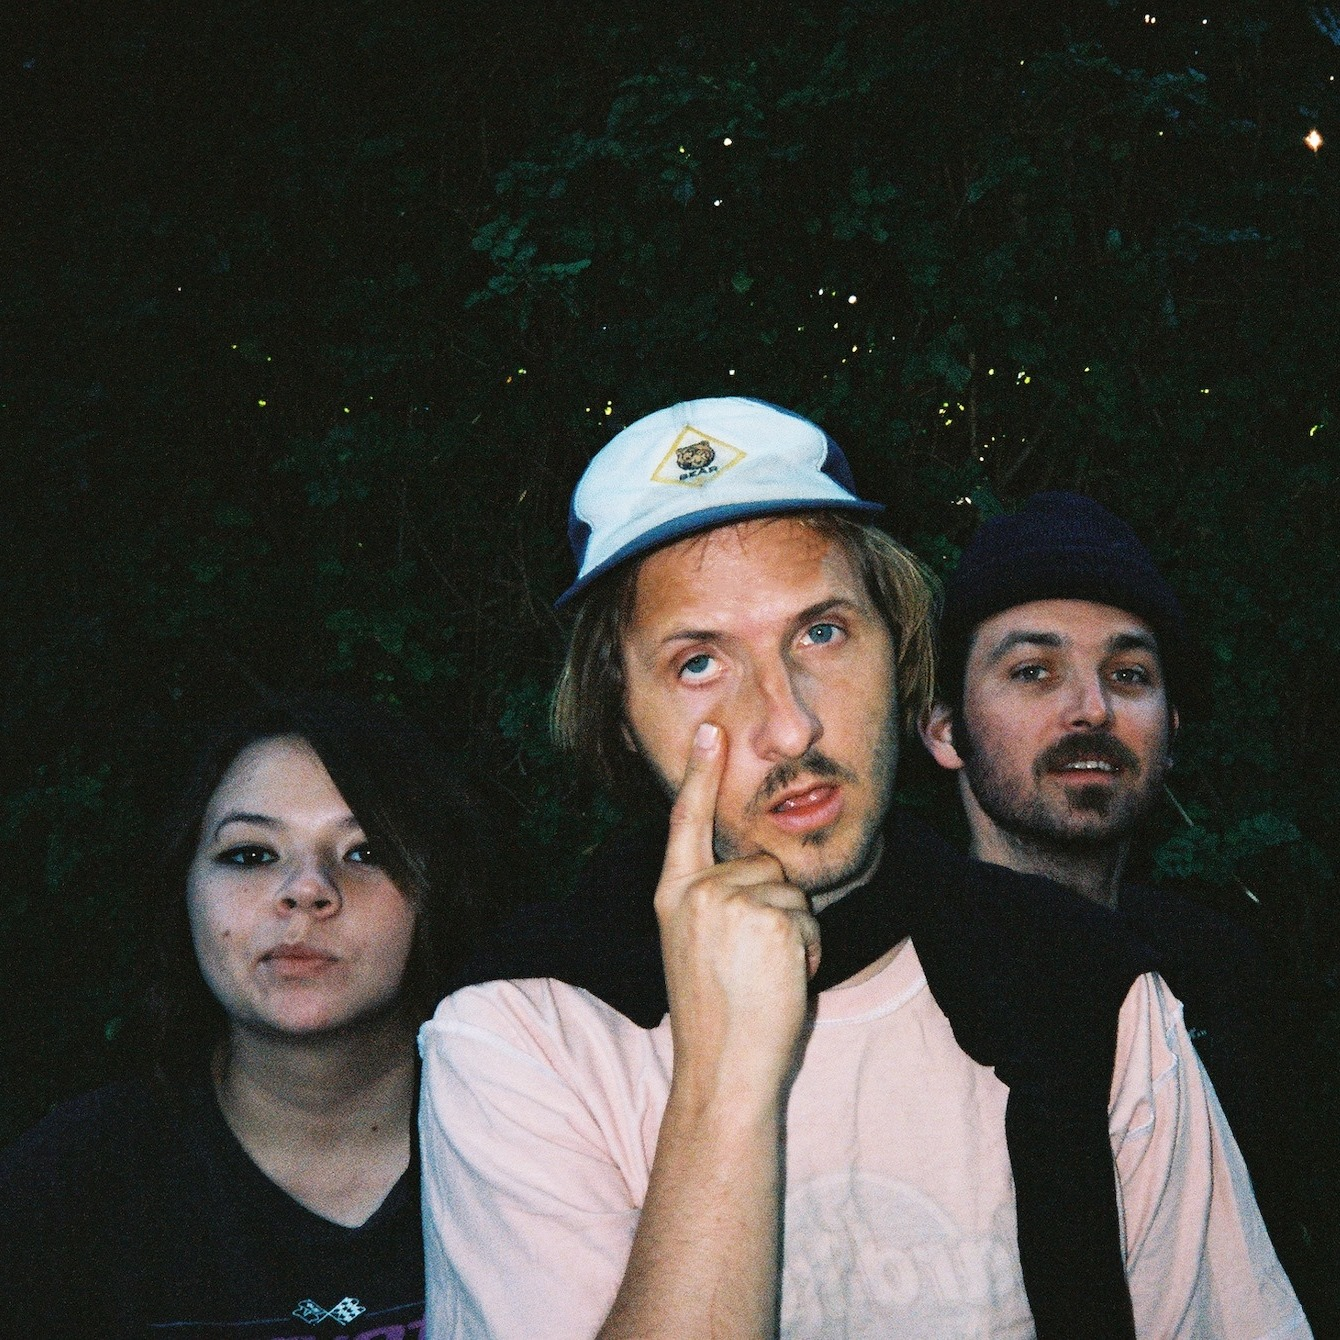 a photo of people in a band called Sego